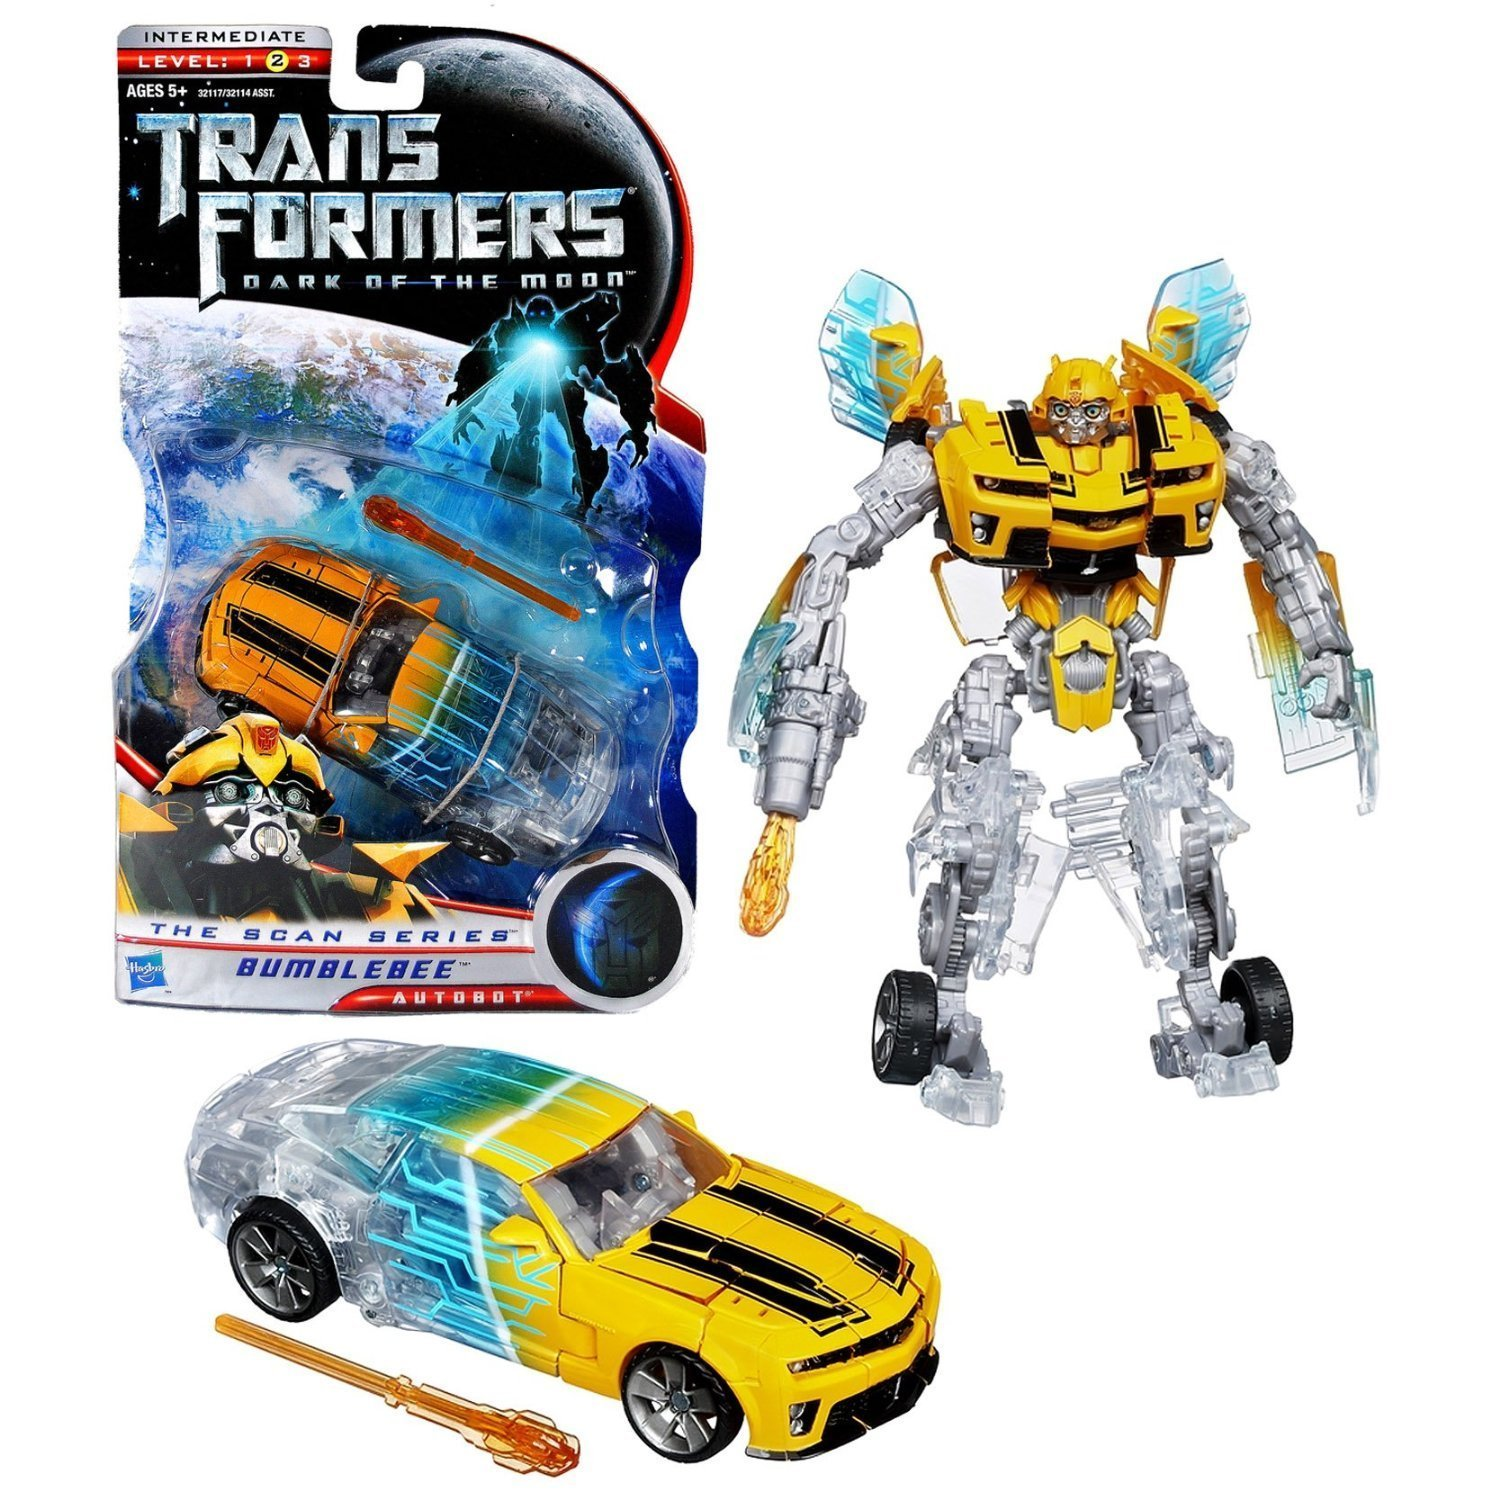 Transformers Dark of the Moon Bumblebee 32117 günstig bestellen